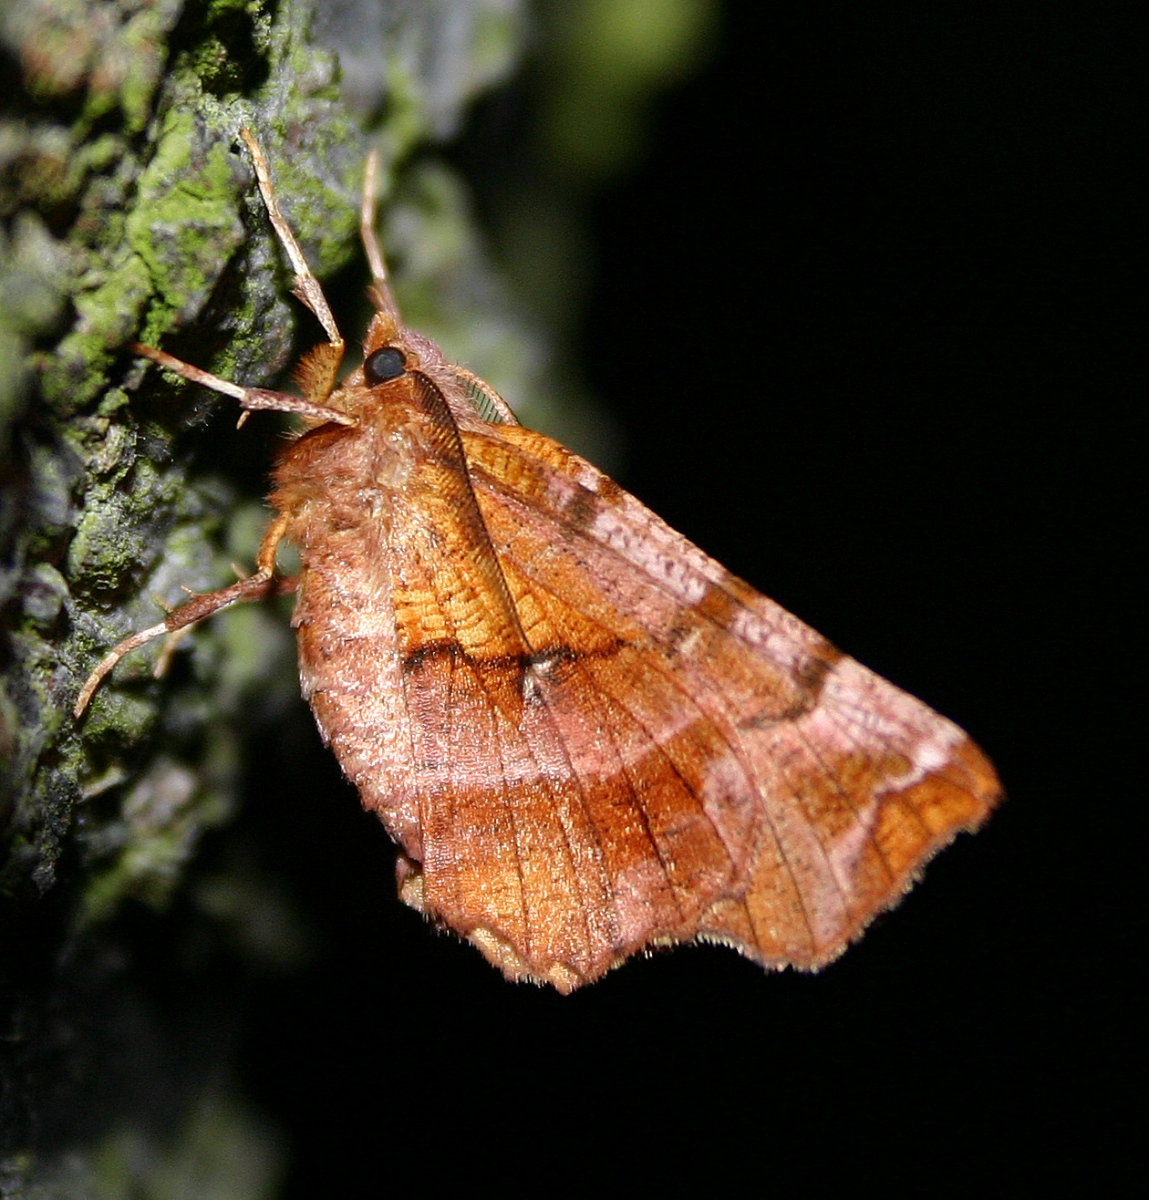 Early Thorn - Sprowston, Norfolk